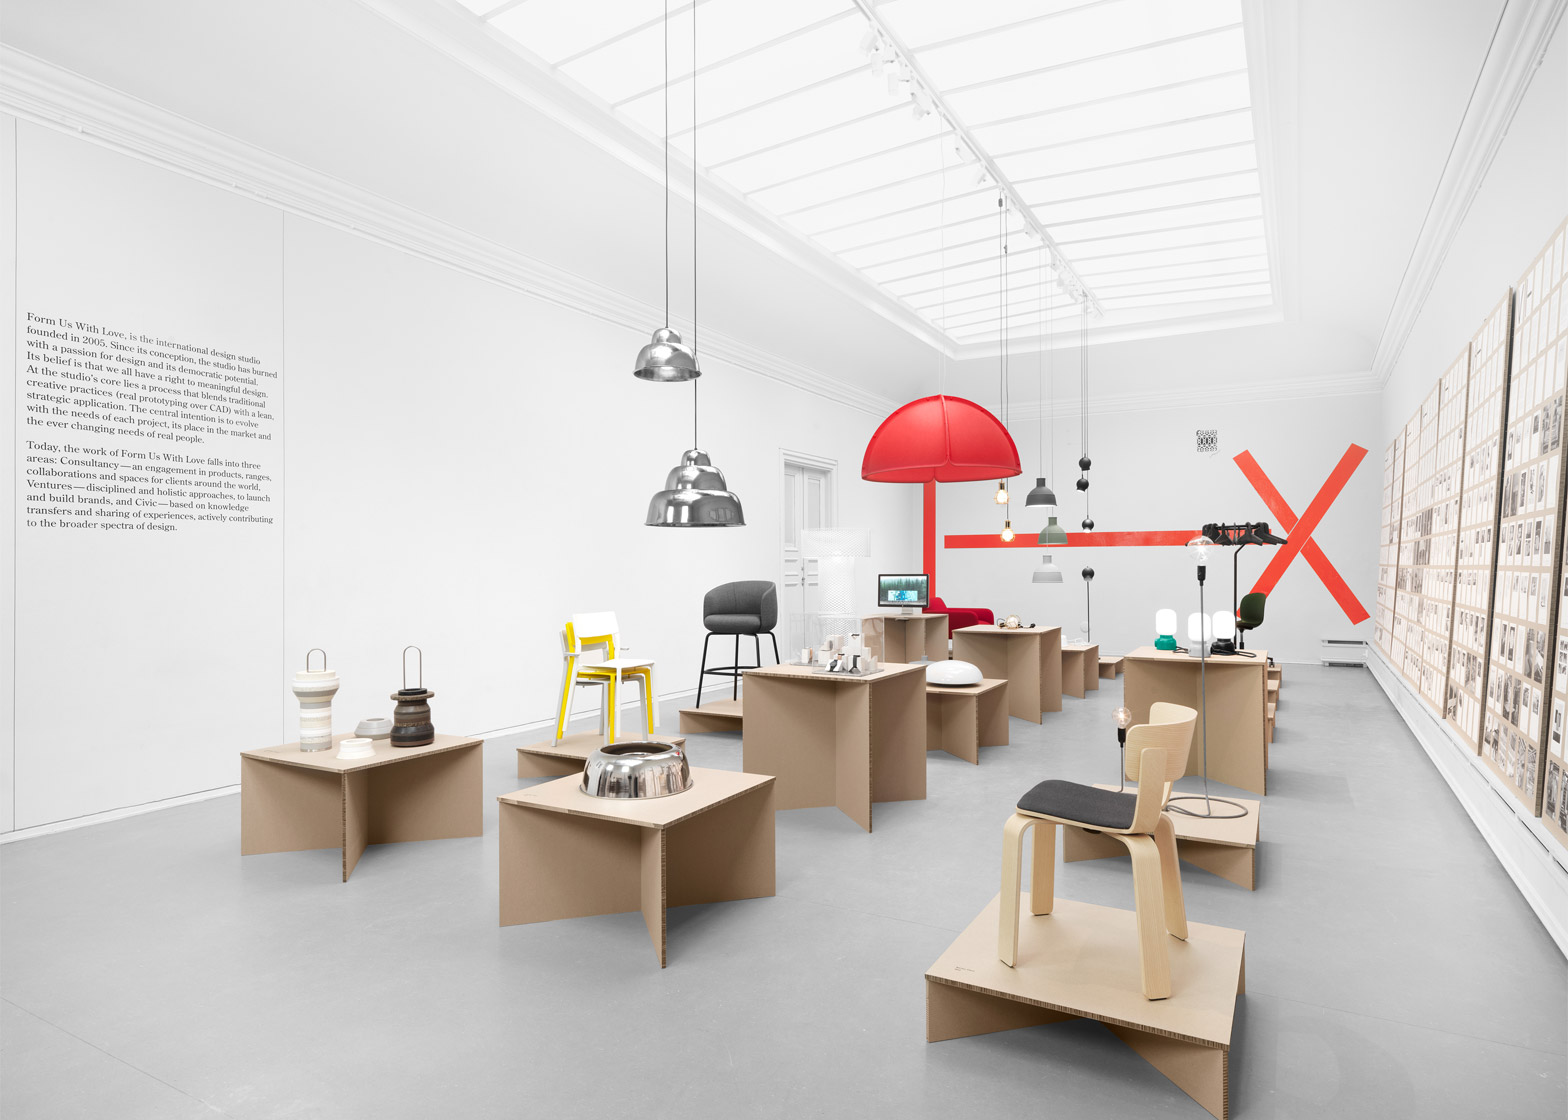 Furniture Design Exhibition form us with love celebrates 10 years with exhibition